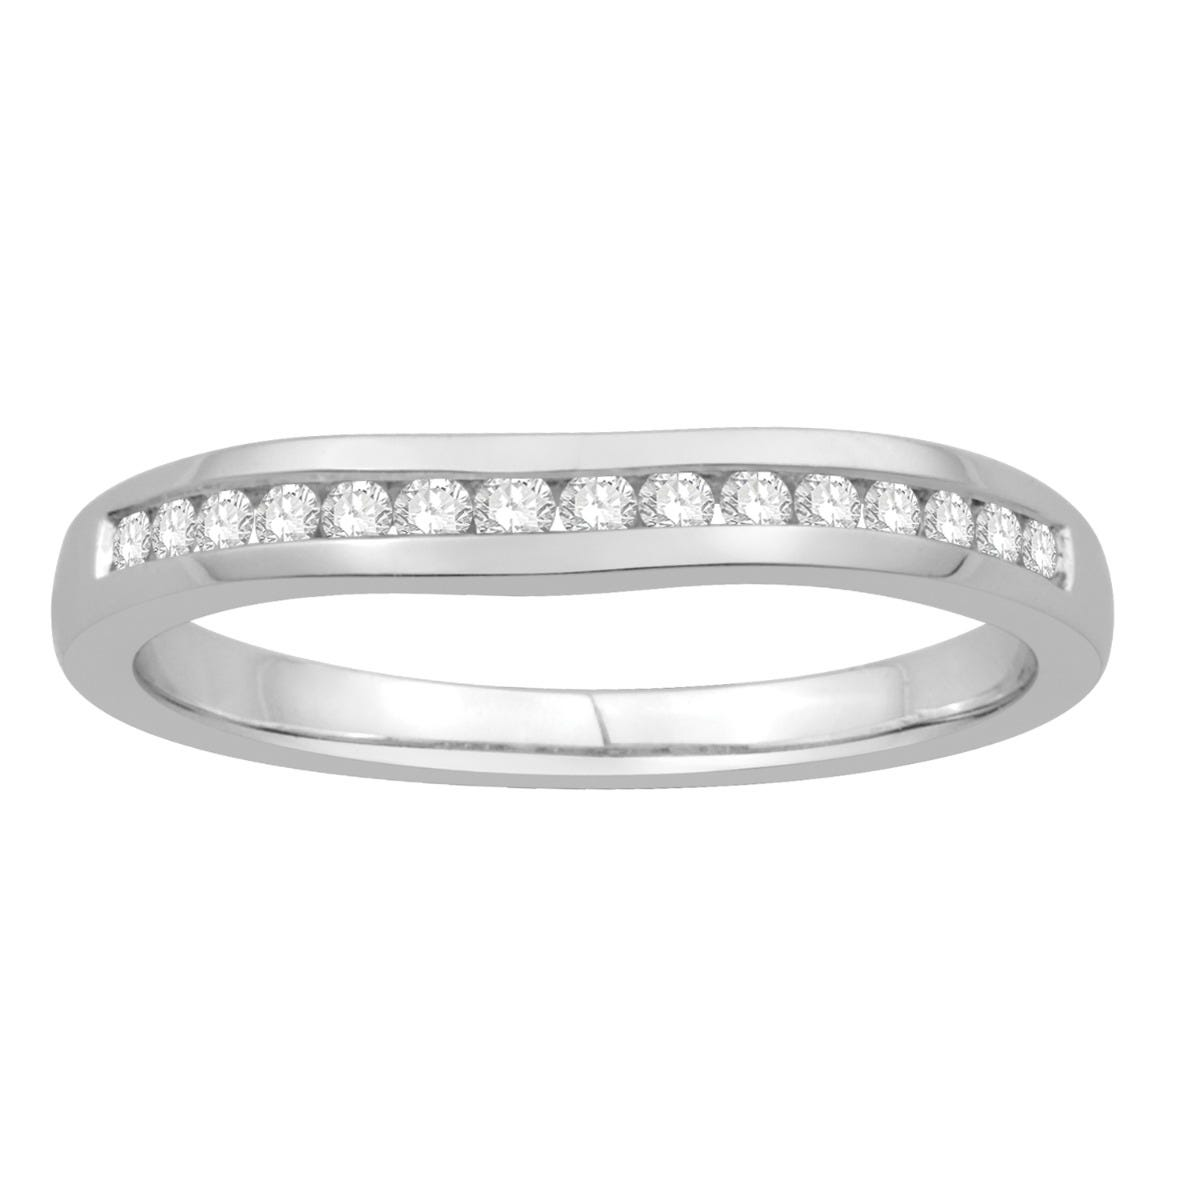 Round 1/10ctw. Channel-Set Contour Diamond Band in 14k White Gold